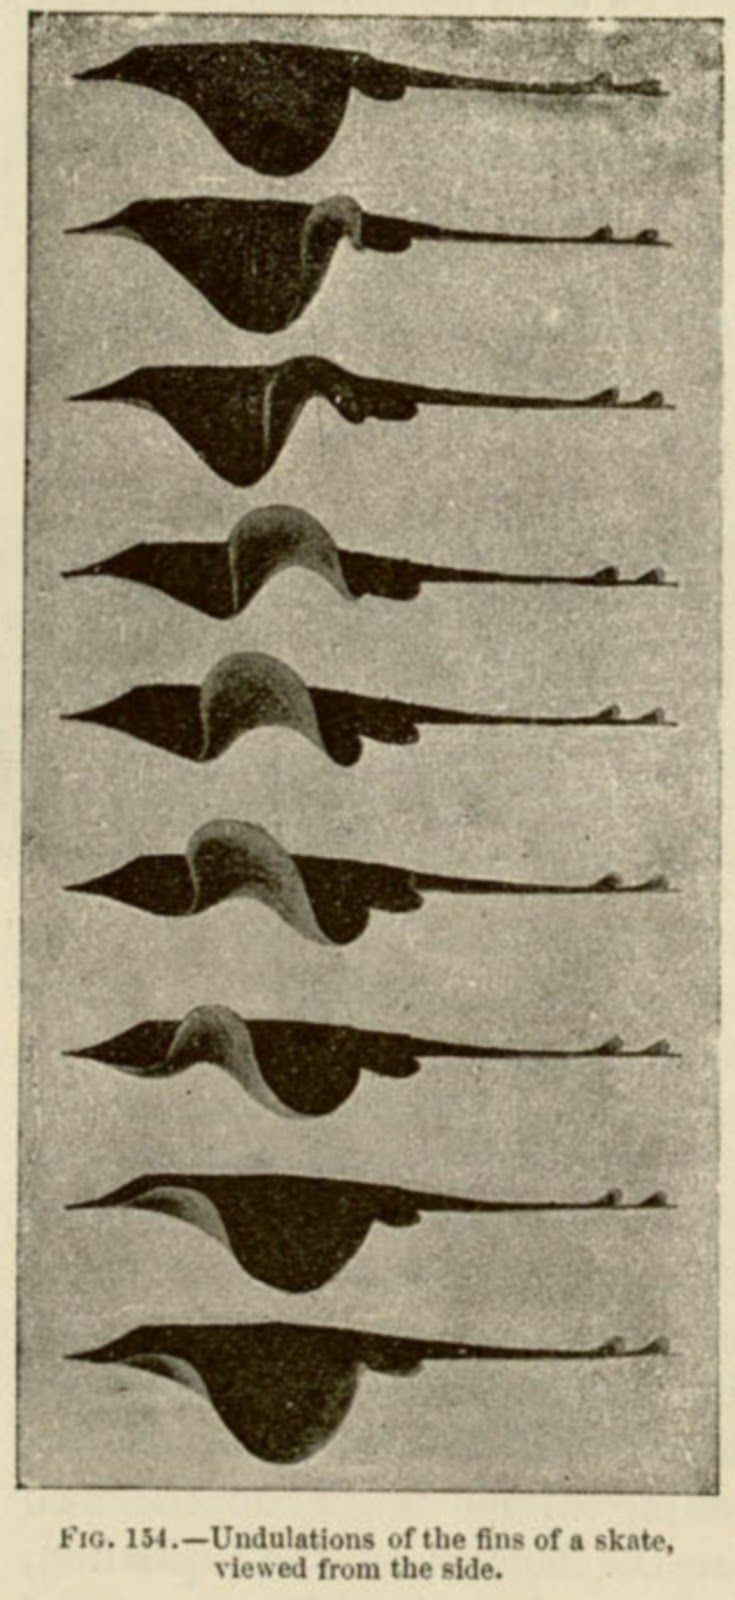 Undulations of the fins of a skate viewed from the side by Étienne-Jules Marey, 1894. Chronophotography